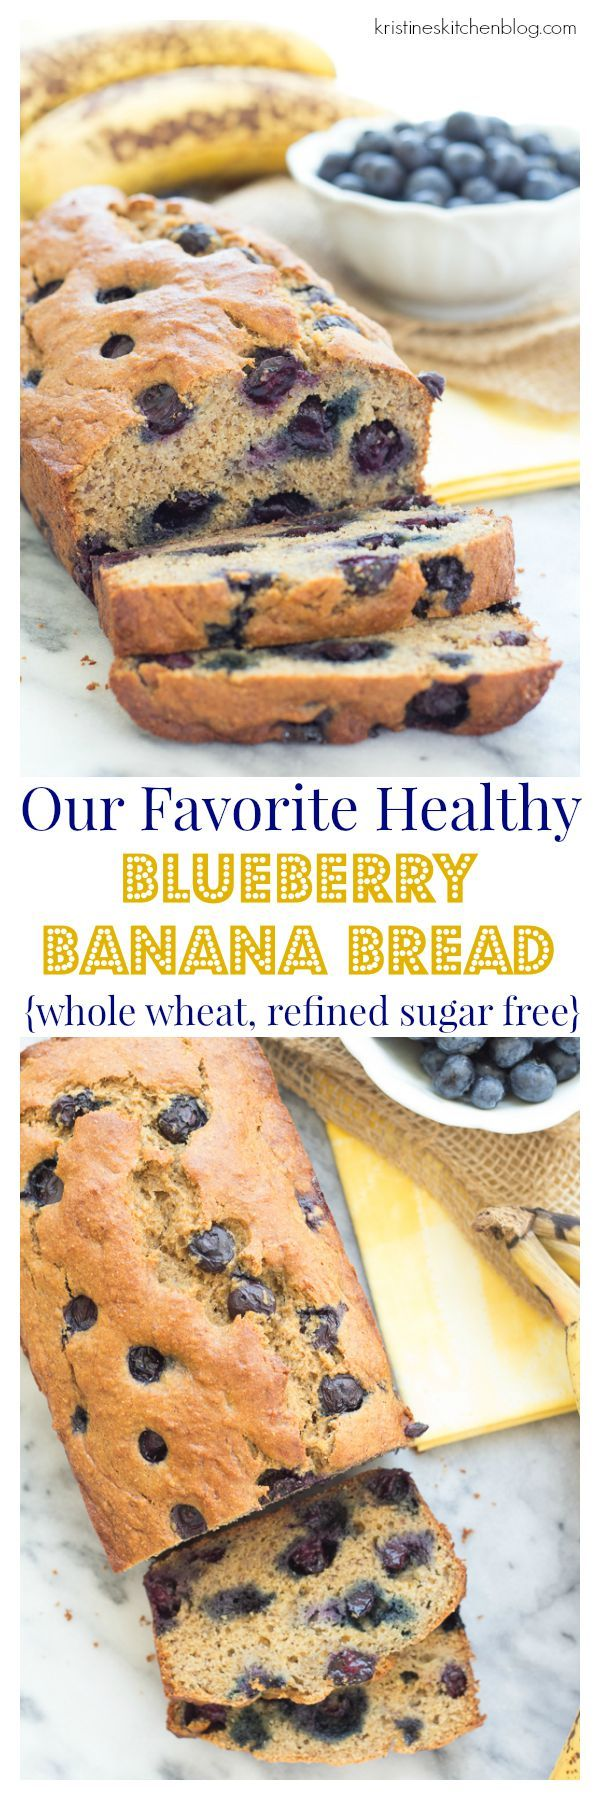 This is our favorite healthy blueberry banana bread! It's whole wheat and sweetened with maple syrup. You'll definitely want a second slice, warm from the oven!